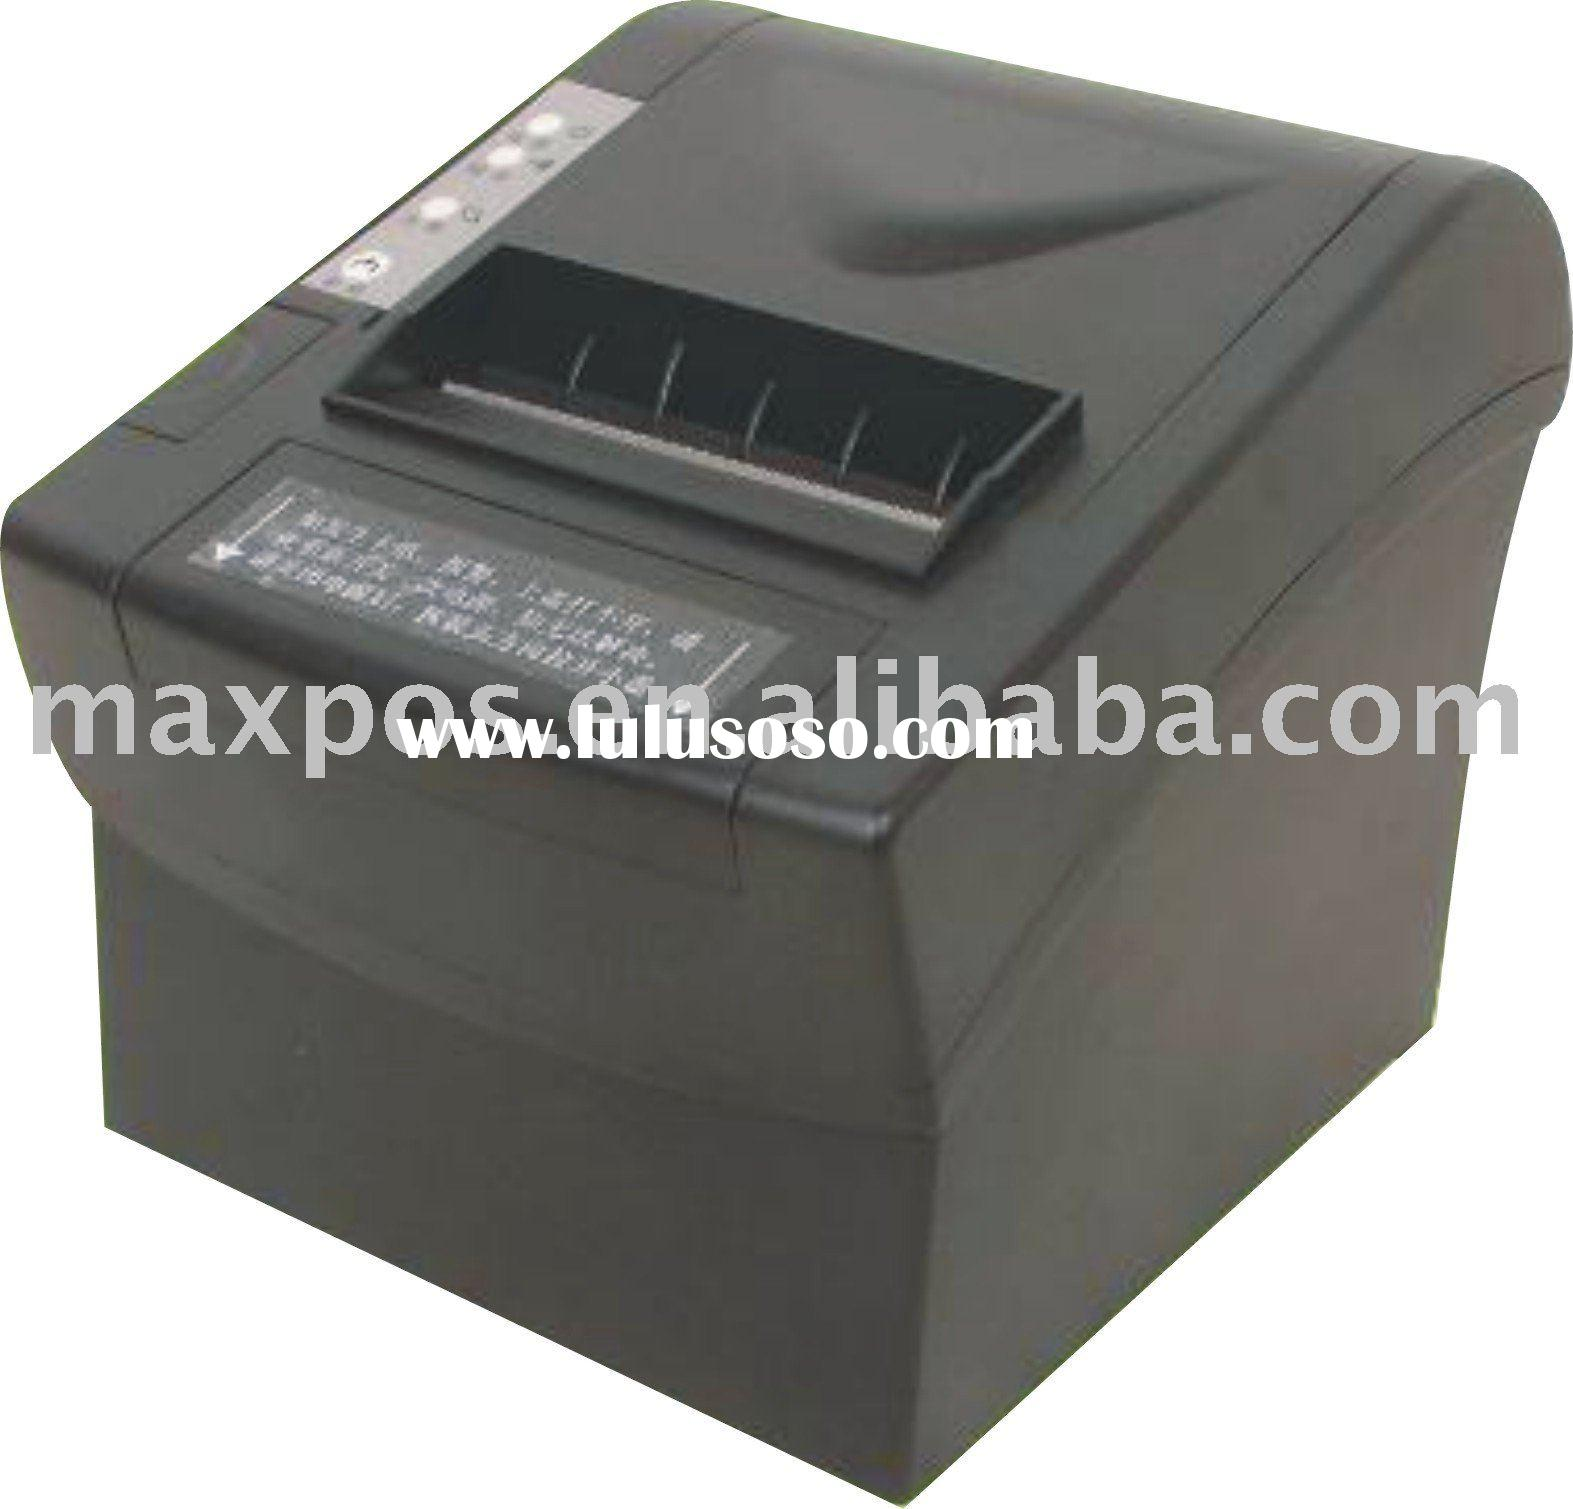 Dell Laser Printer 1710n Driver Mac